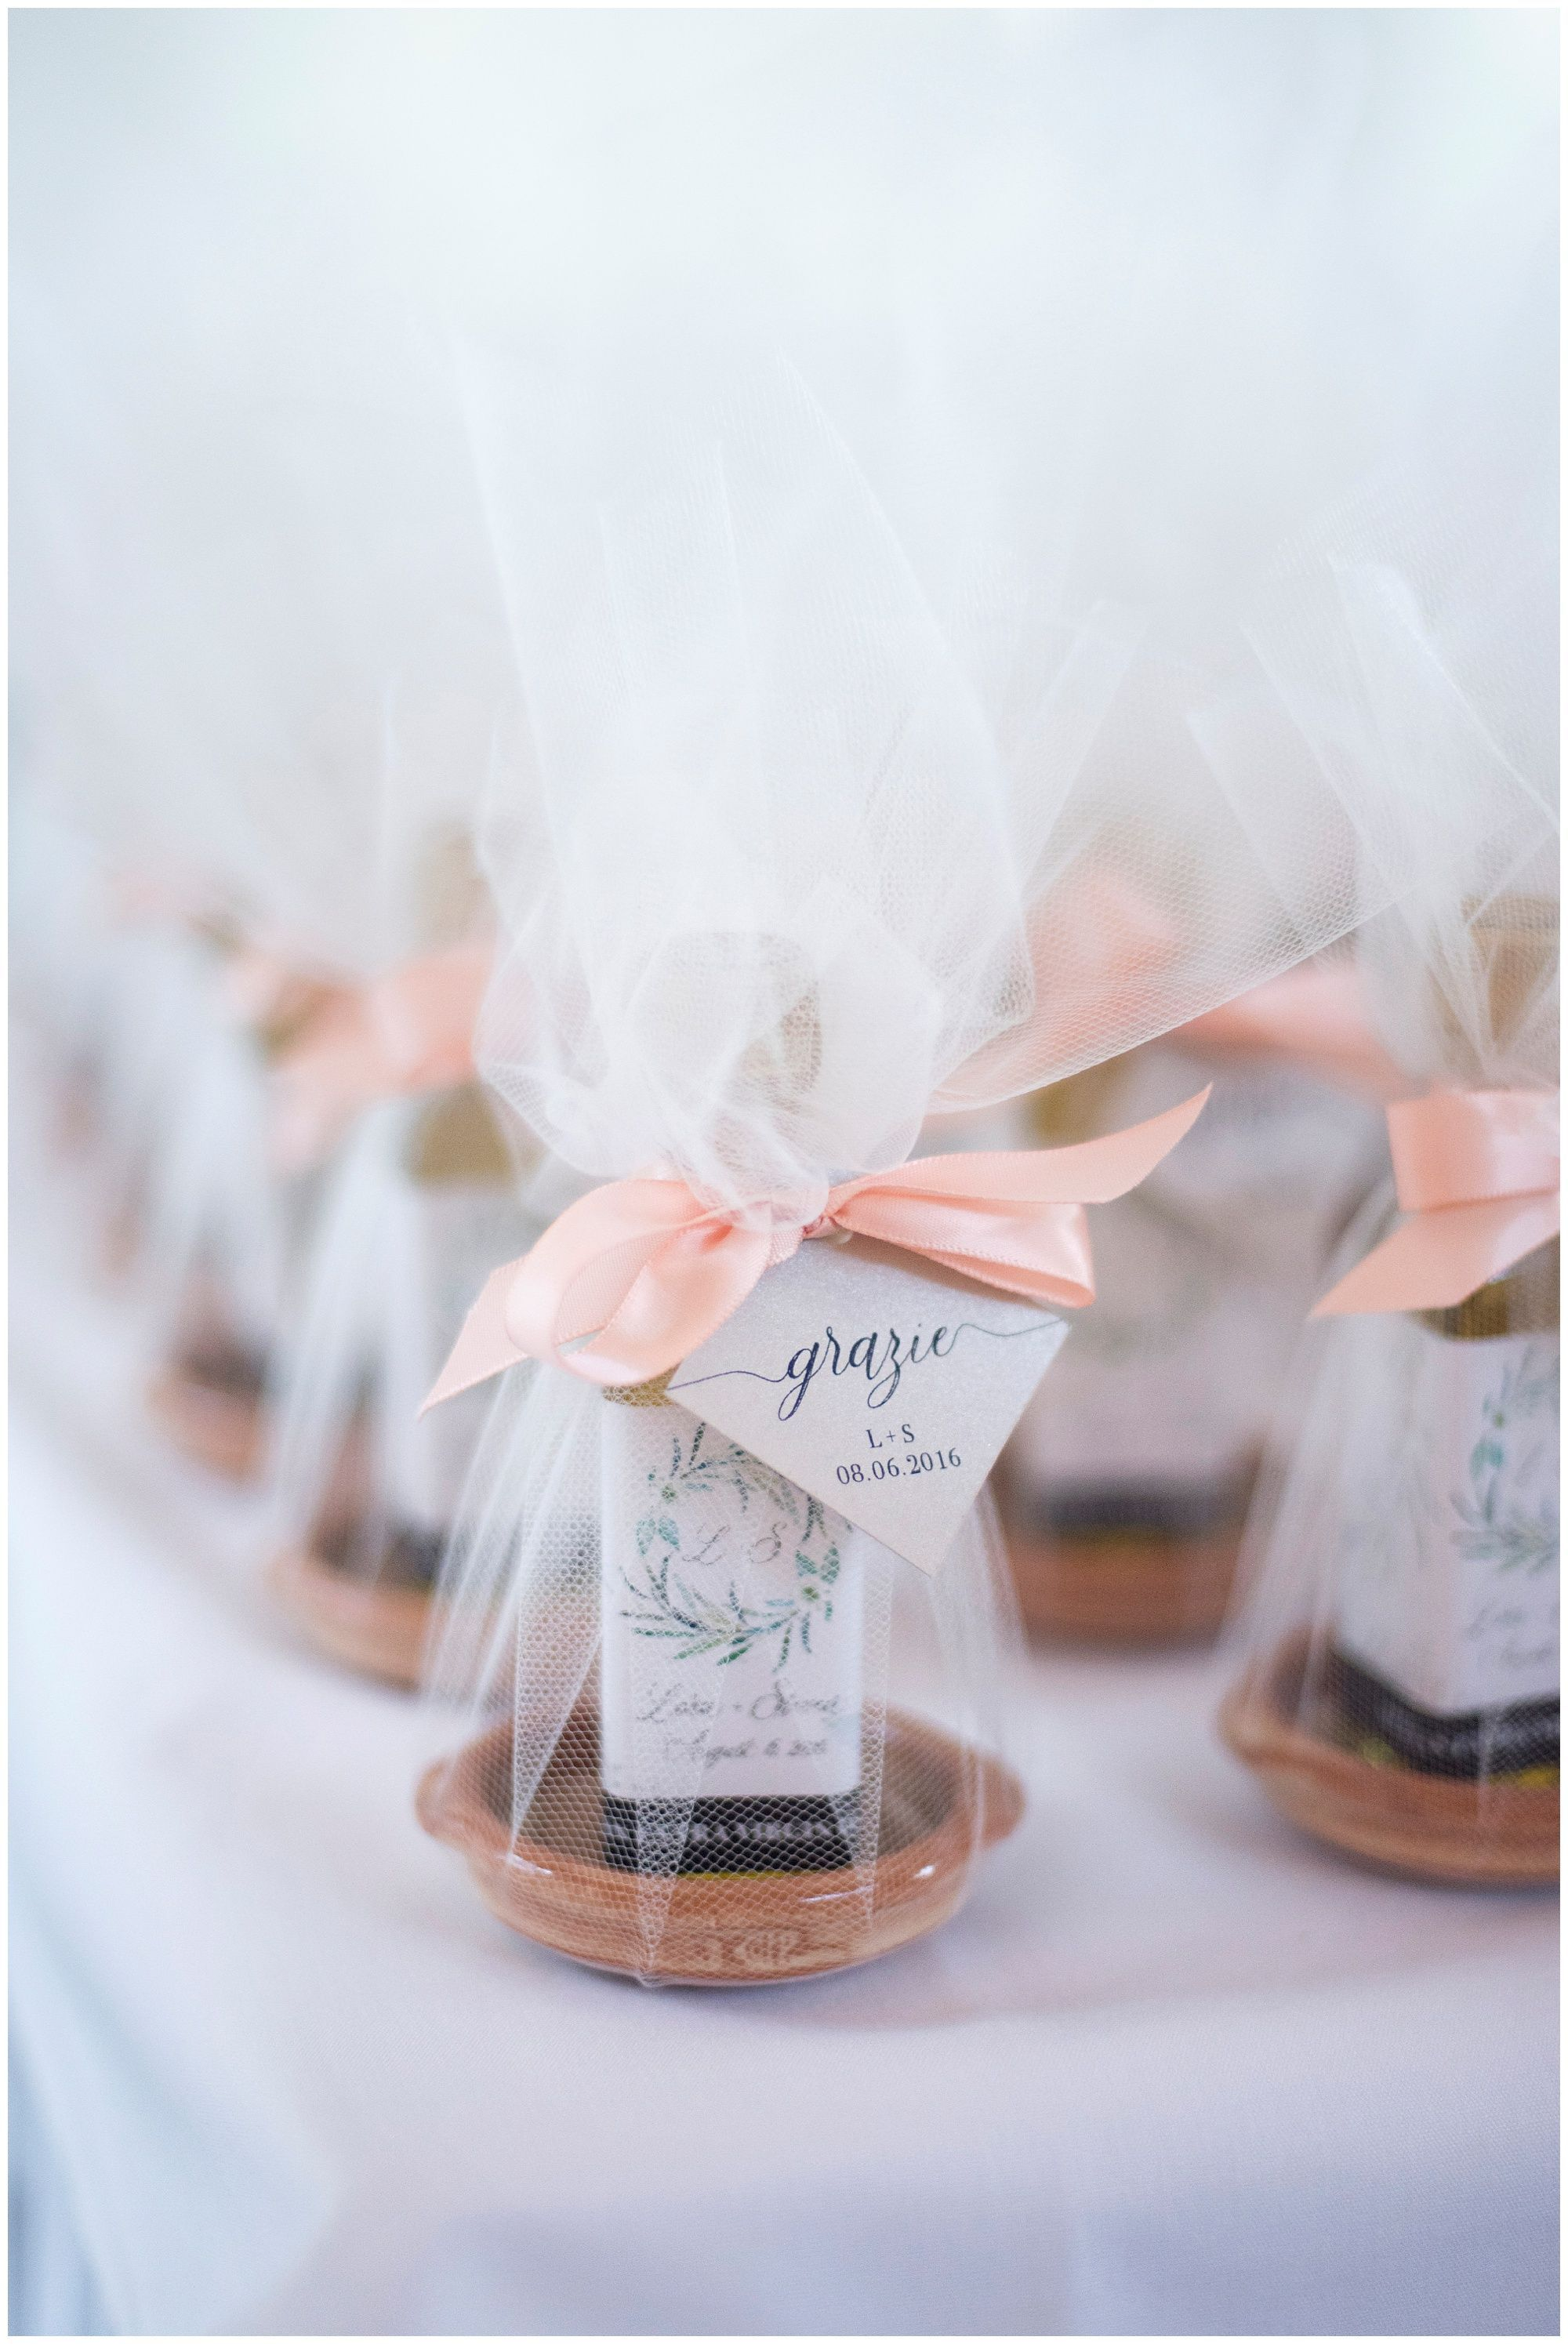 The Best Wedding Favor From An Italian Couple Olive Oil With A